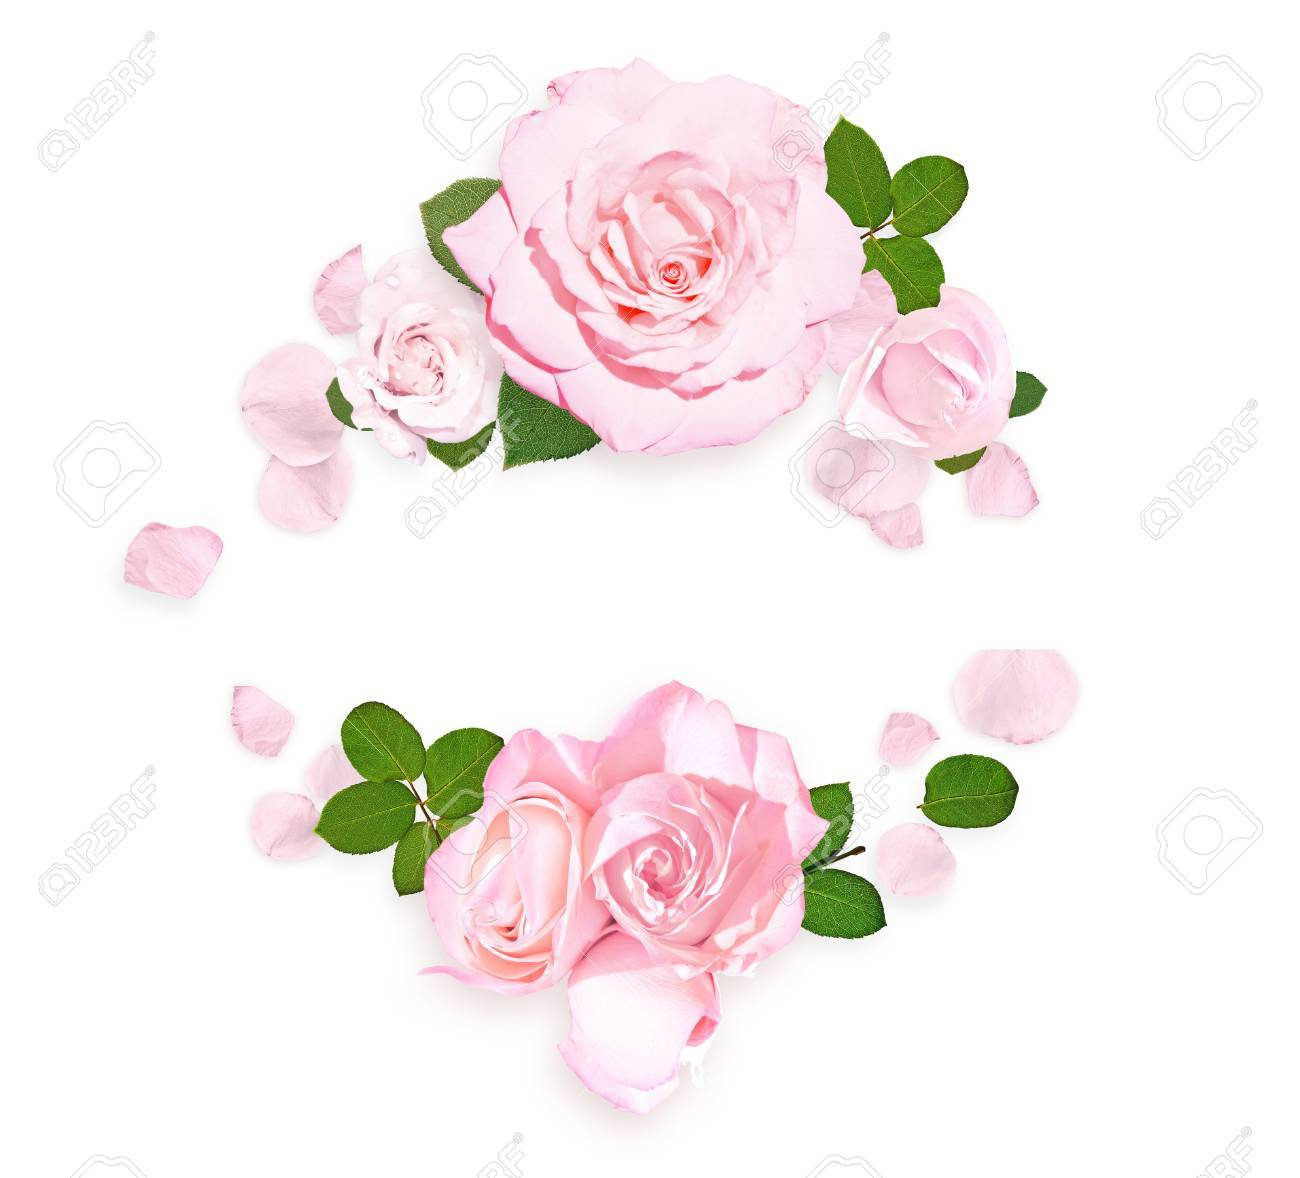 Pink Roses On White Background. Rose Frame. Flat Lay Stock Photo ...